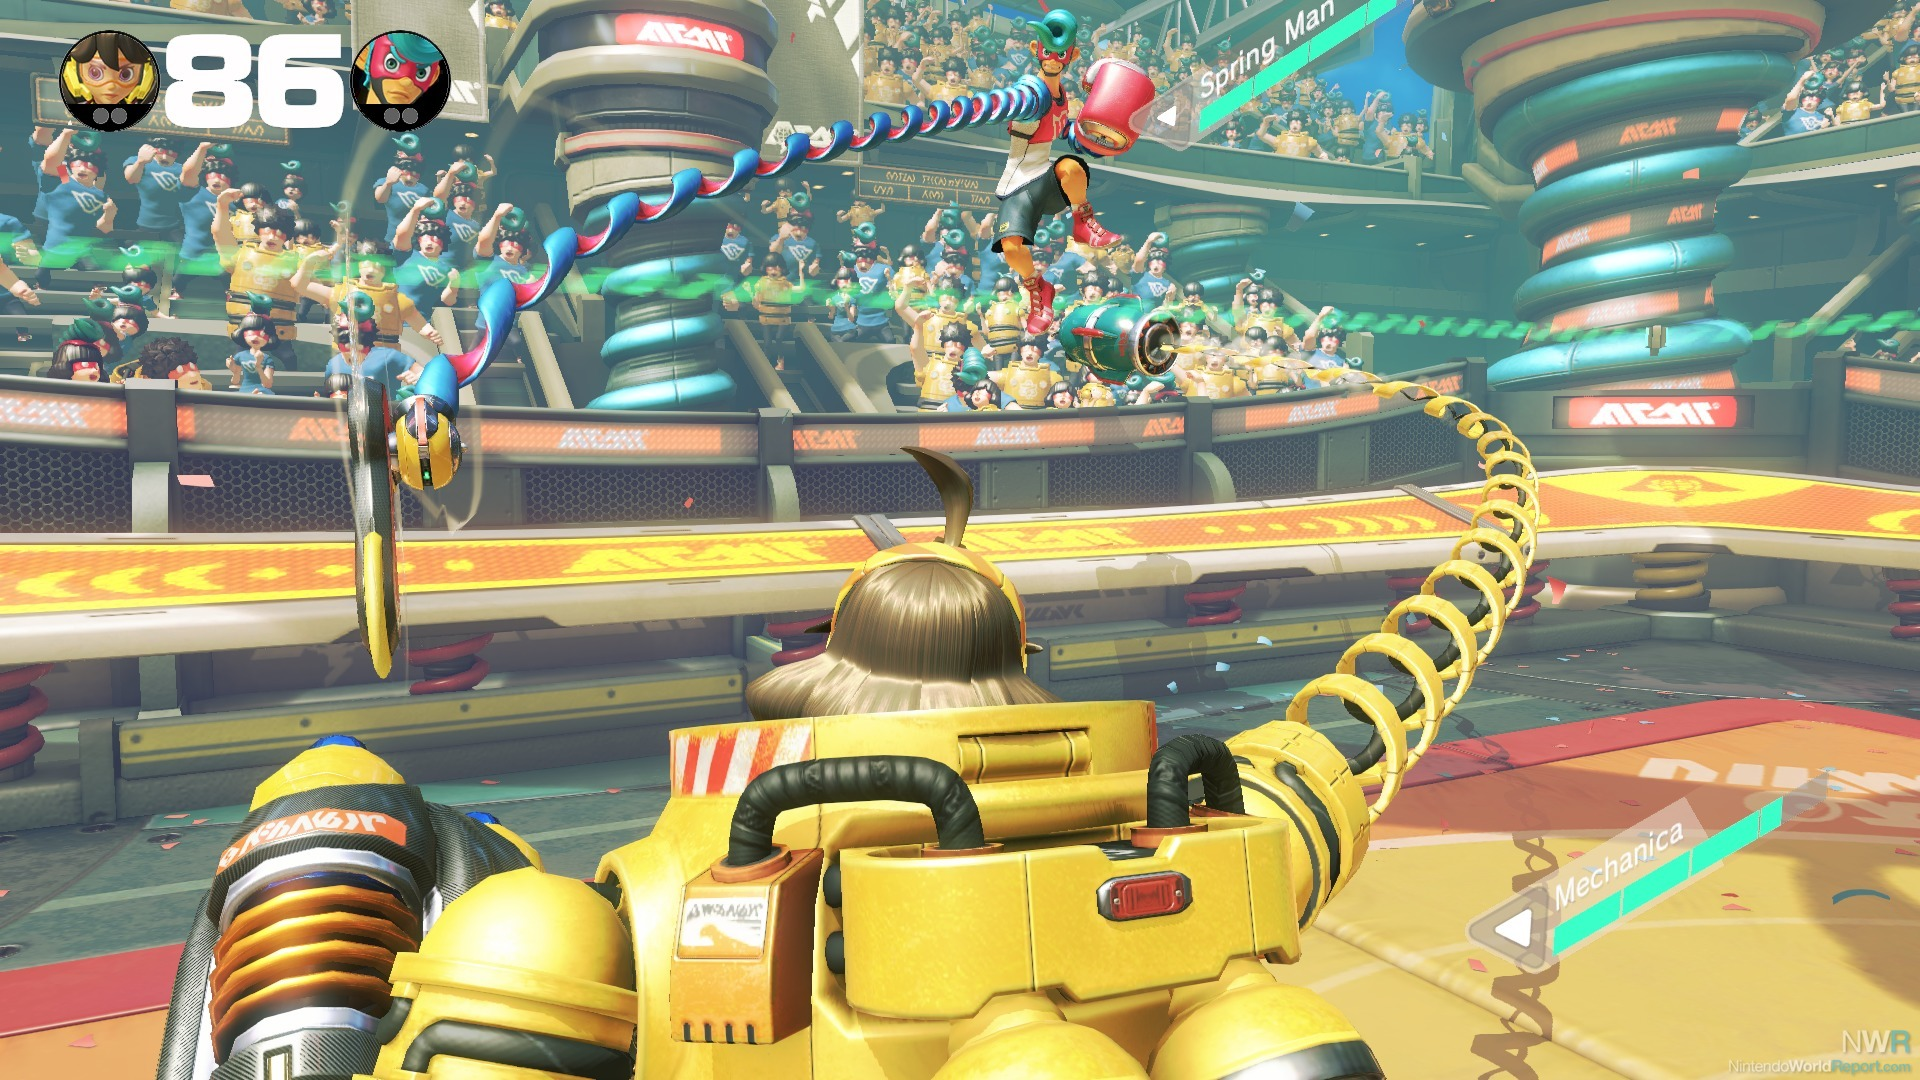 Arms Update Rebalances Roster, Adds New Training Exercises